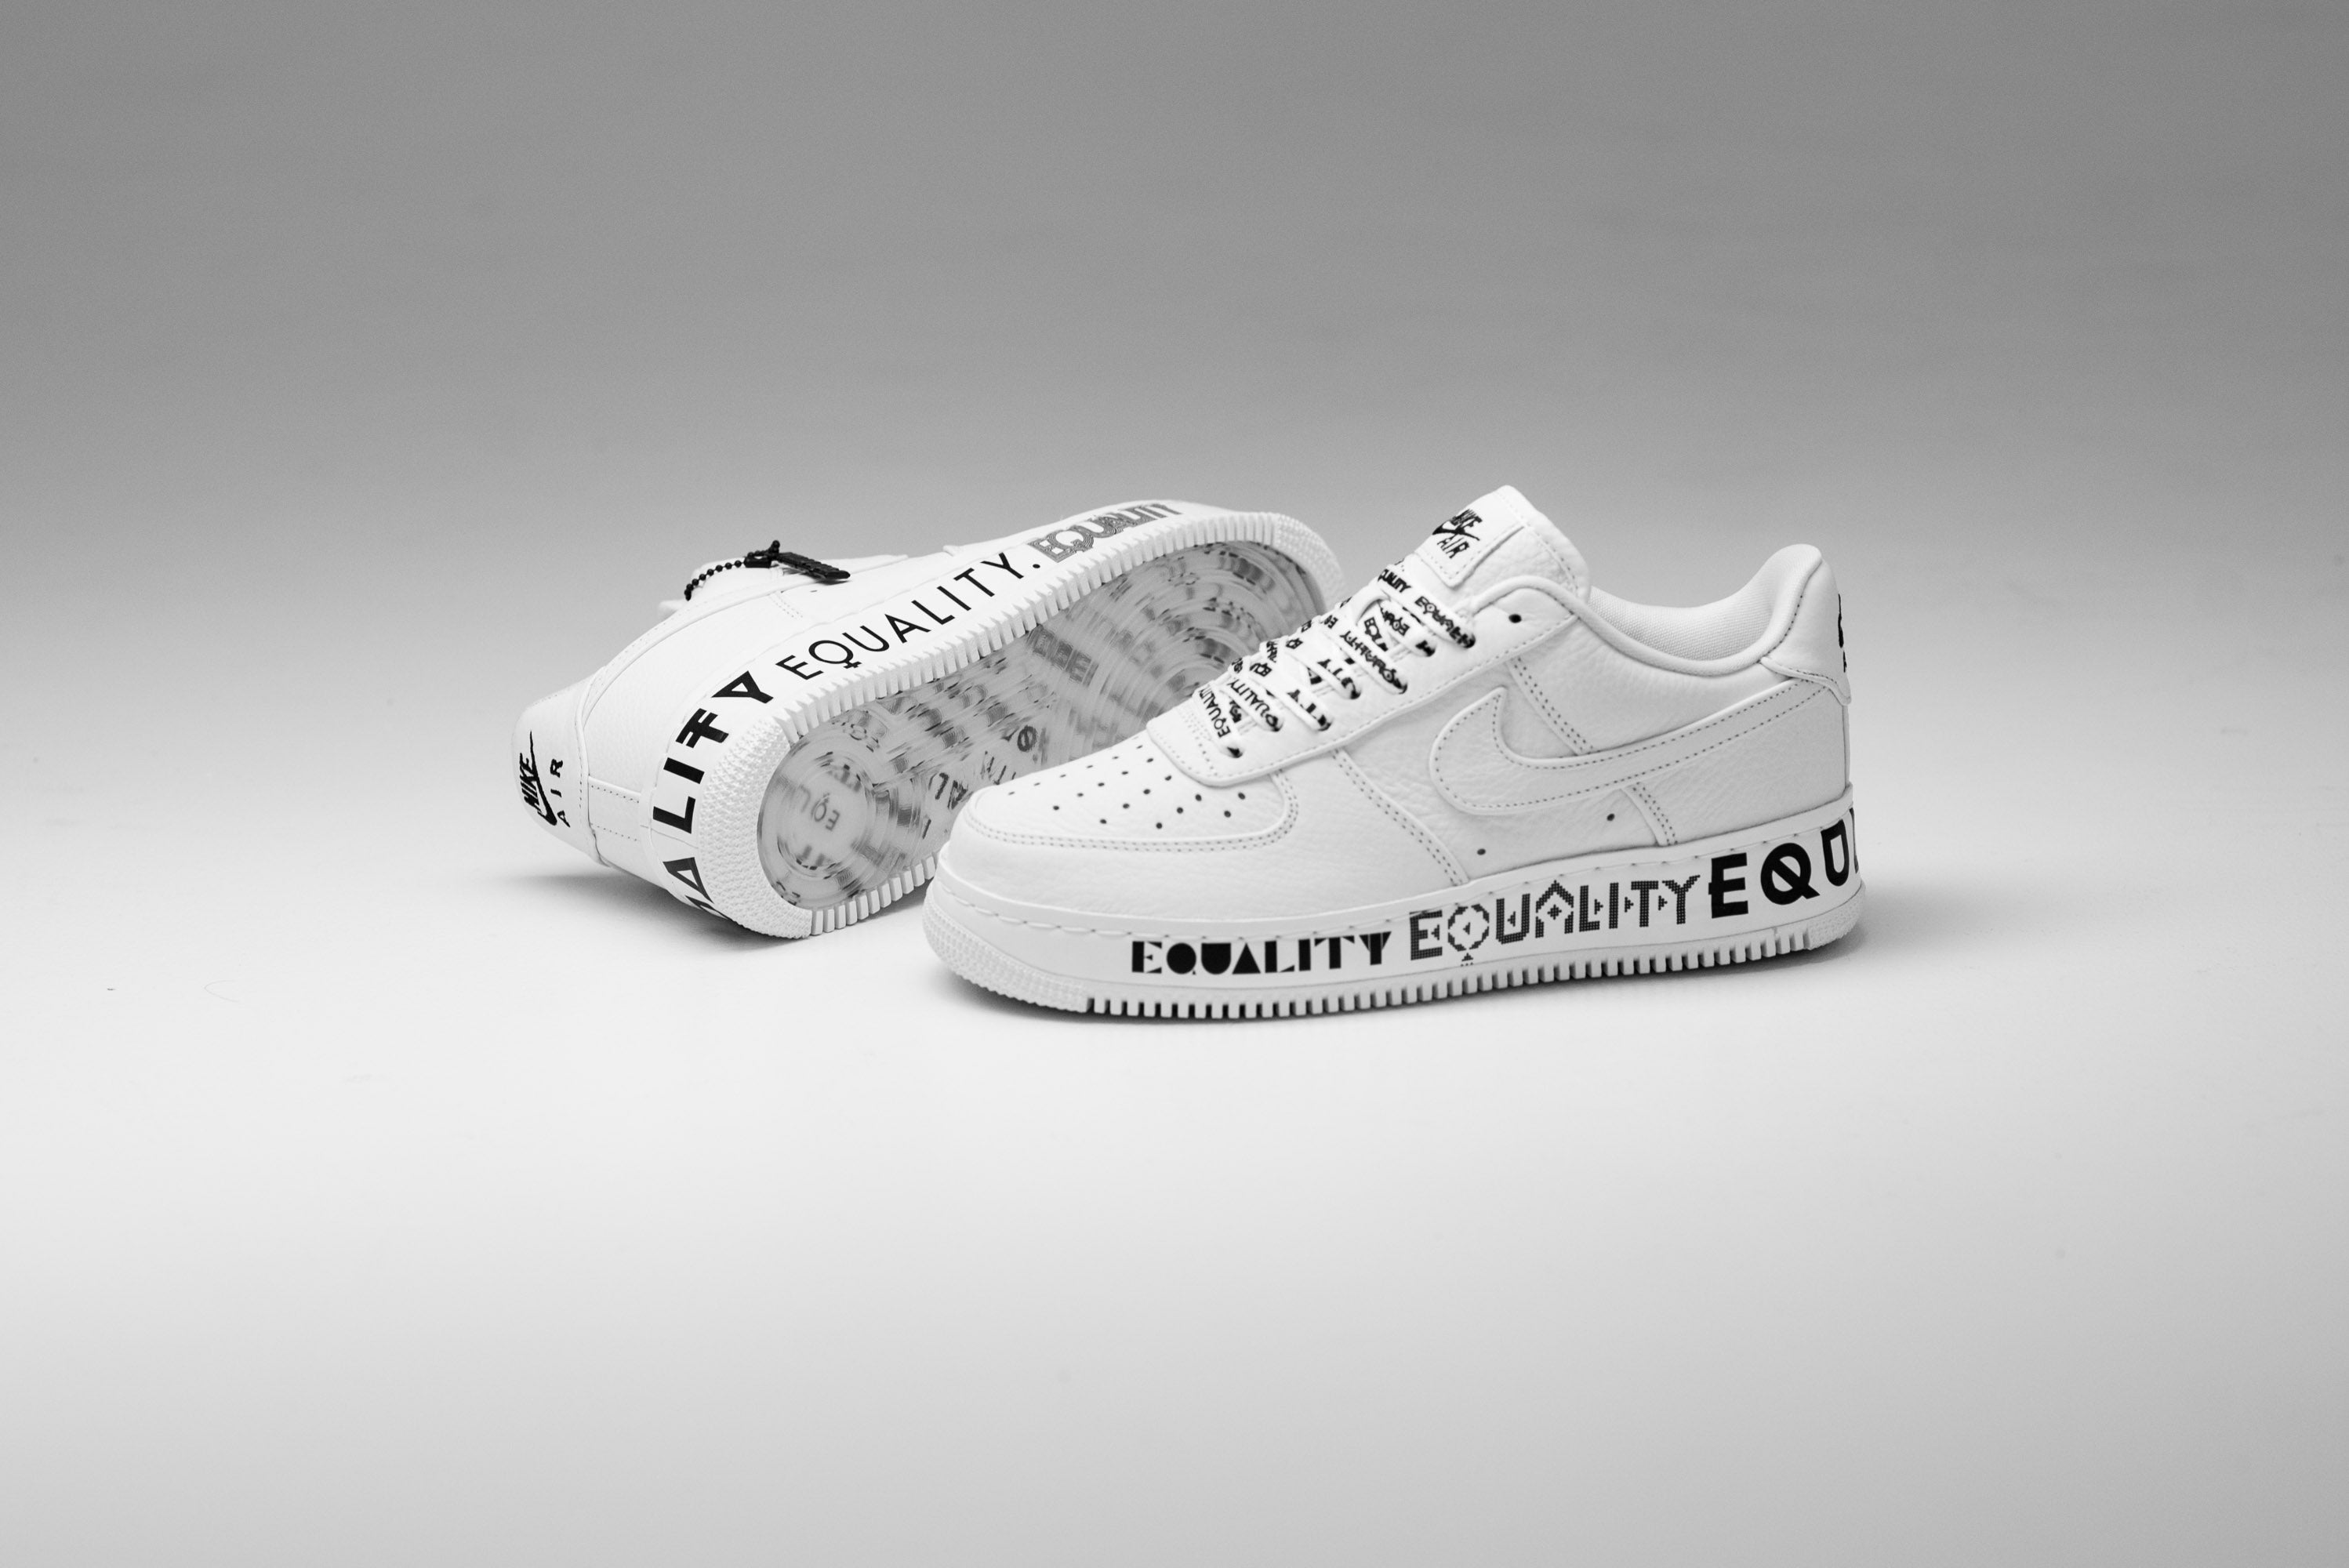 new product 2224c 718a2 Nike Air Force 1 Low CMFT EQUALTY - White/Black